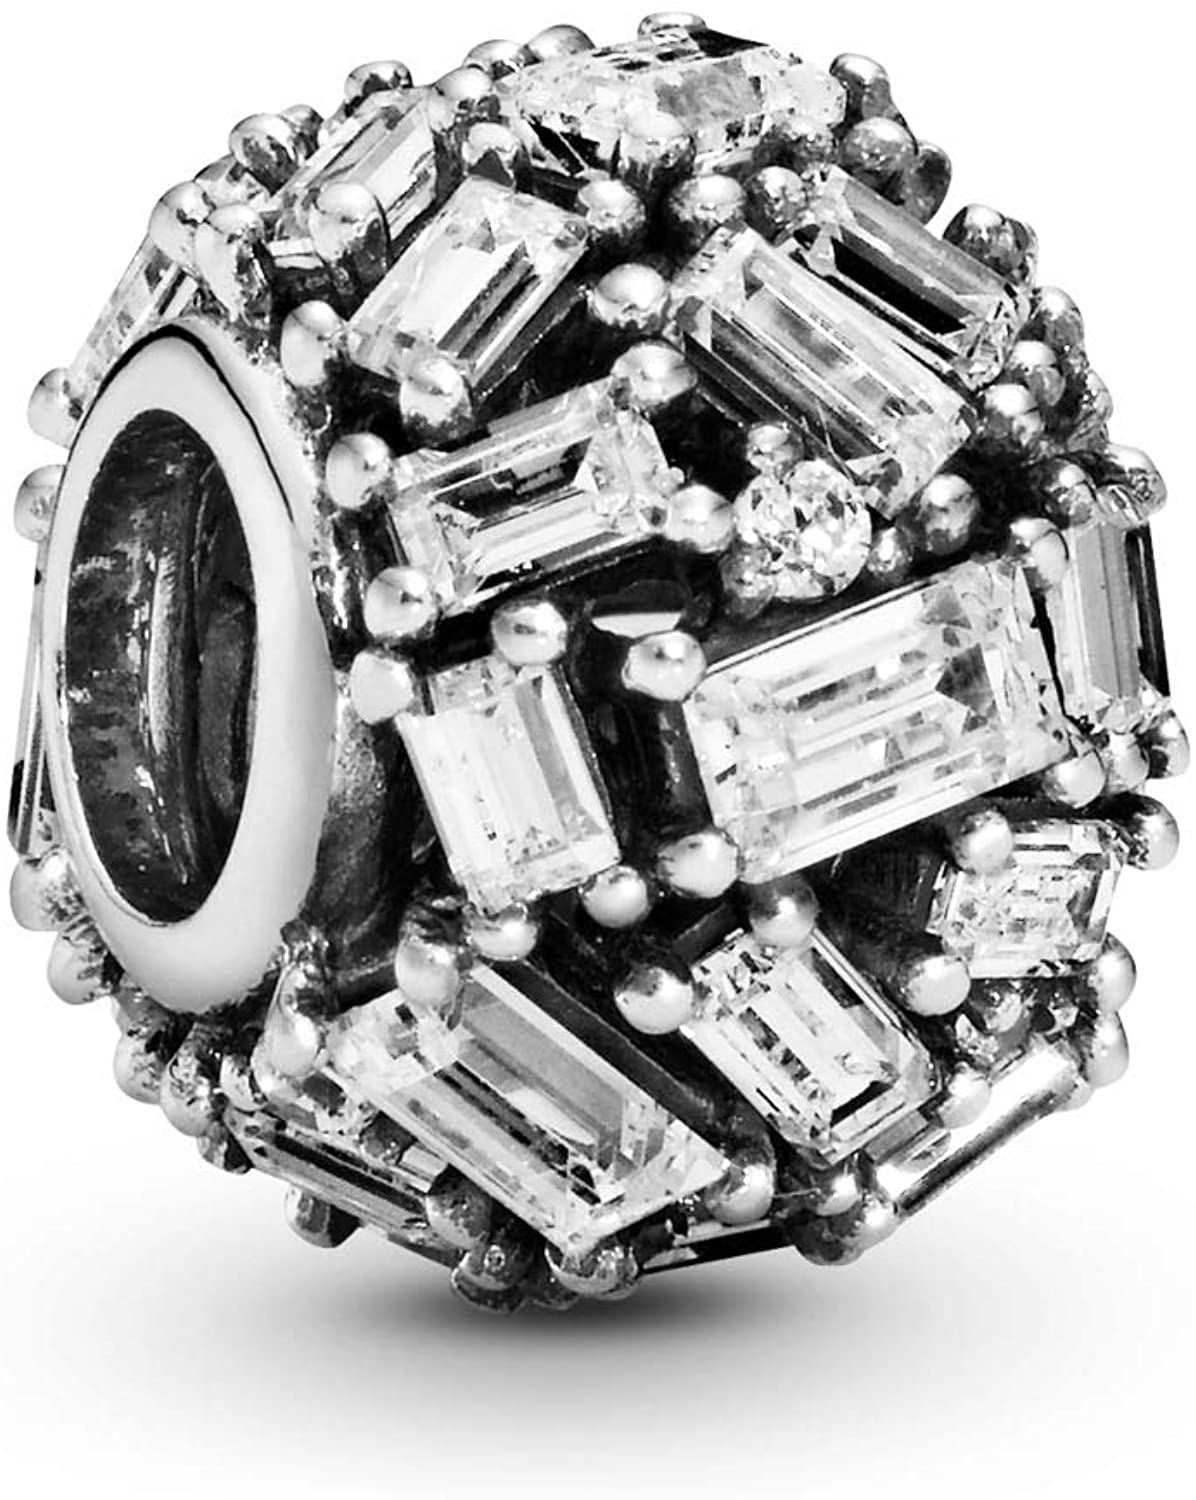 Pandora Jewelry Clear Ice Cube Cubic Zirconia Charm in Sterling Silver